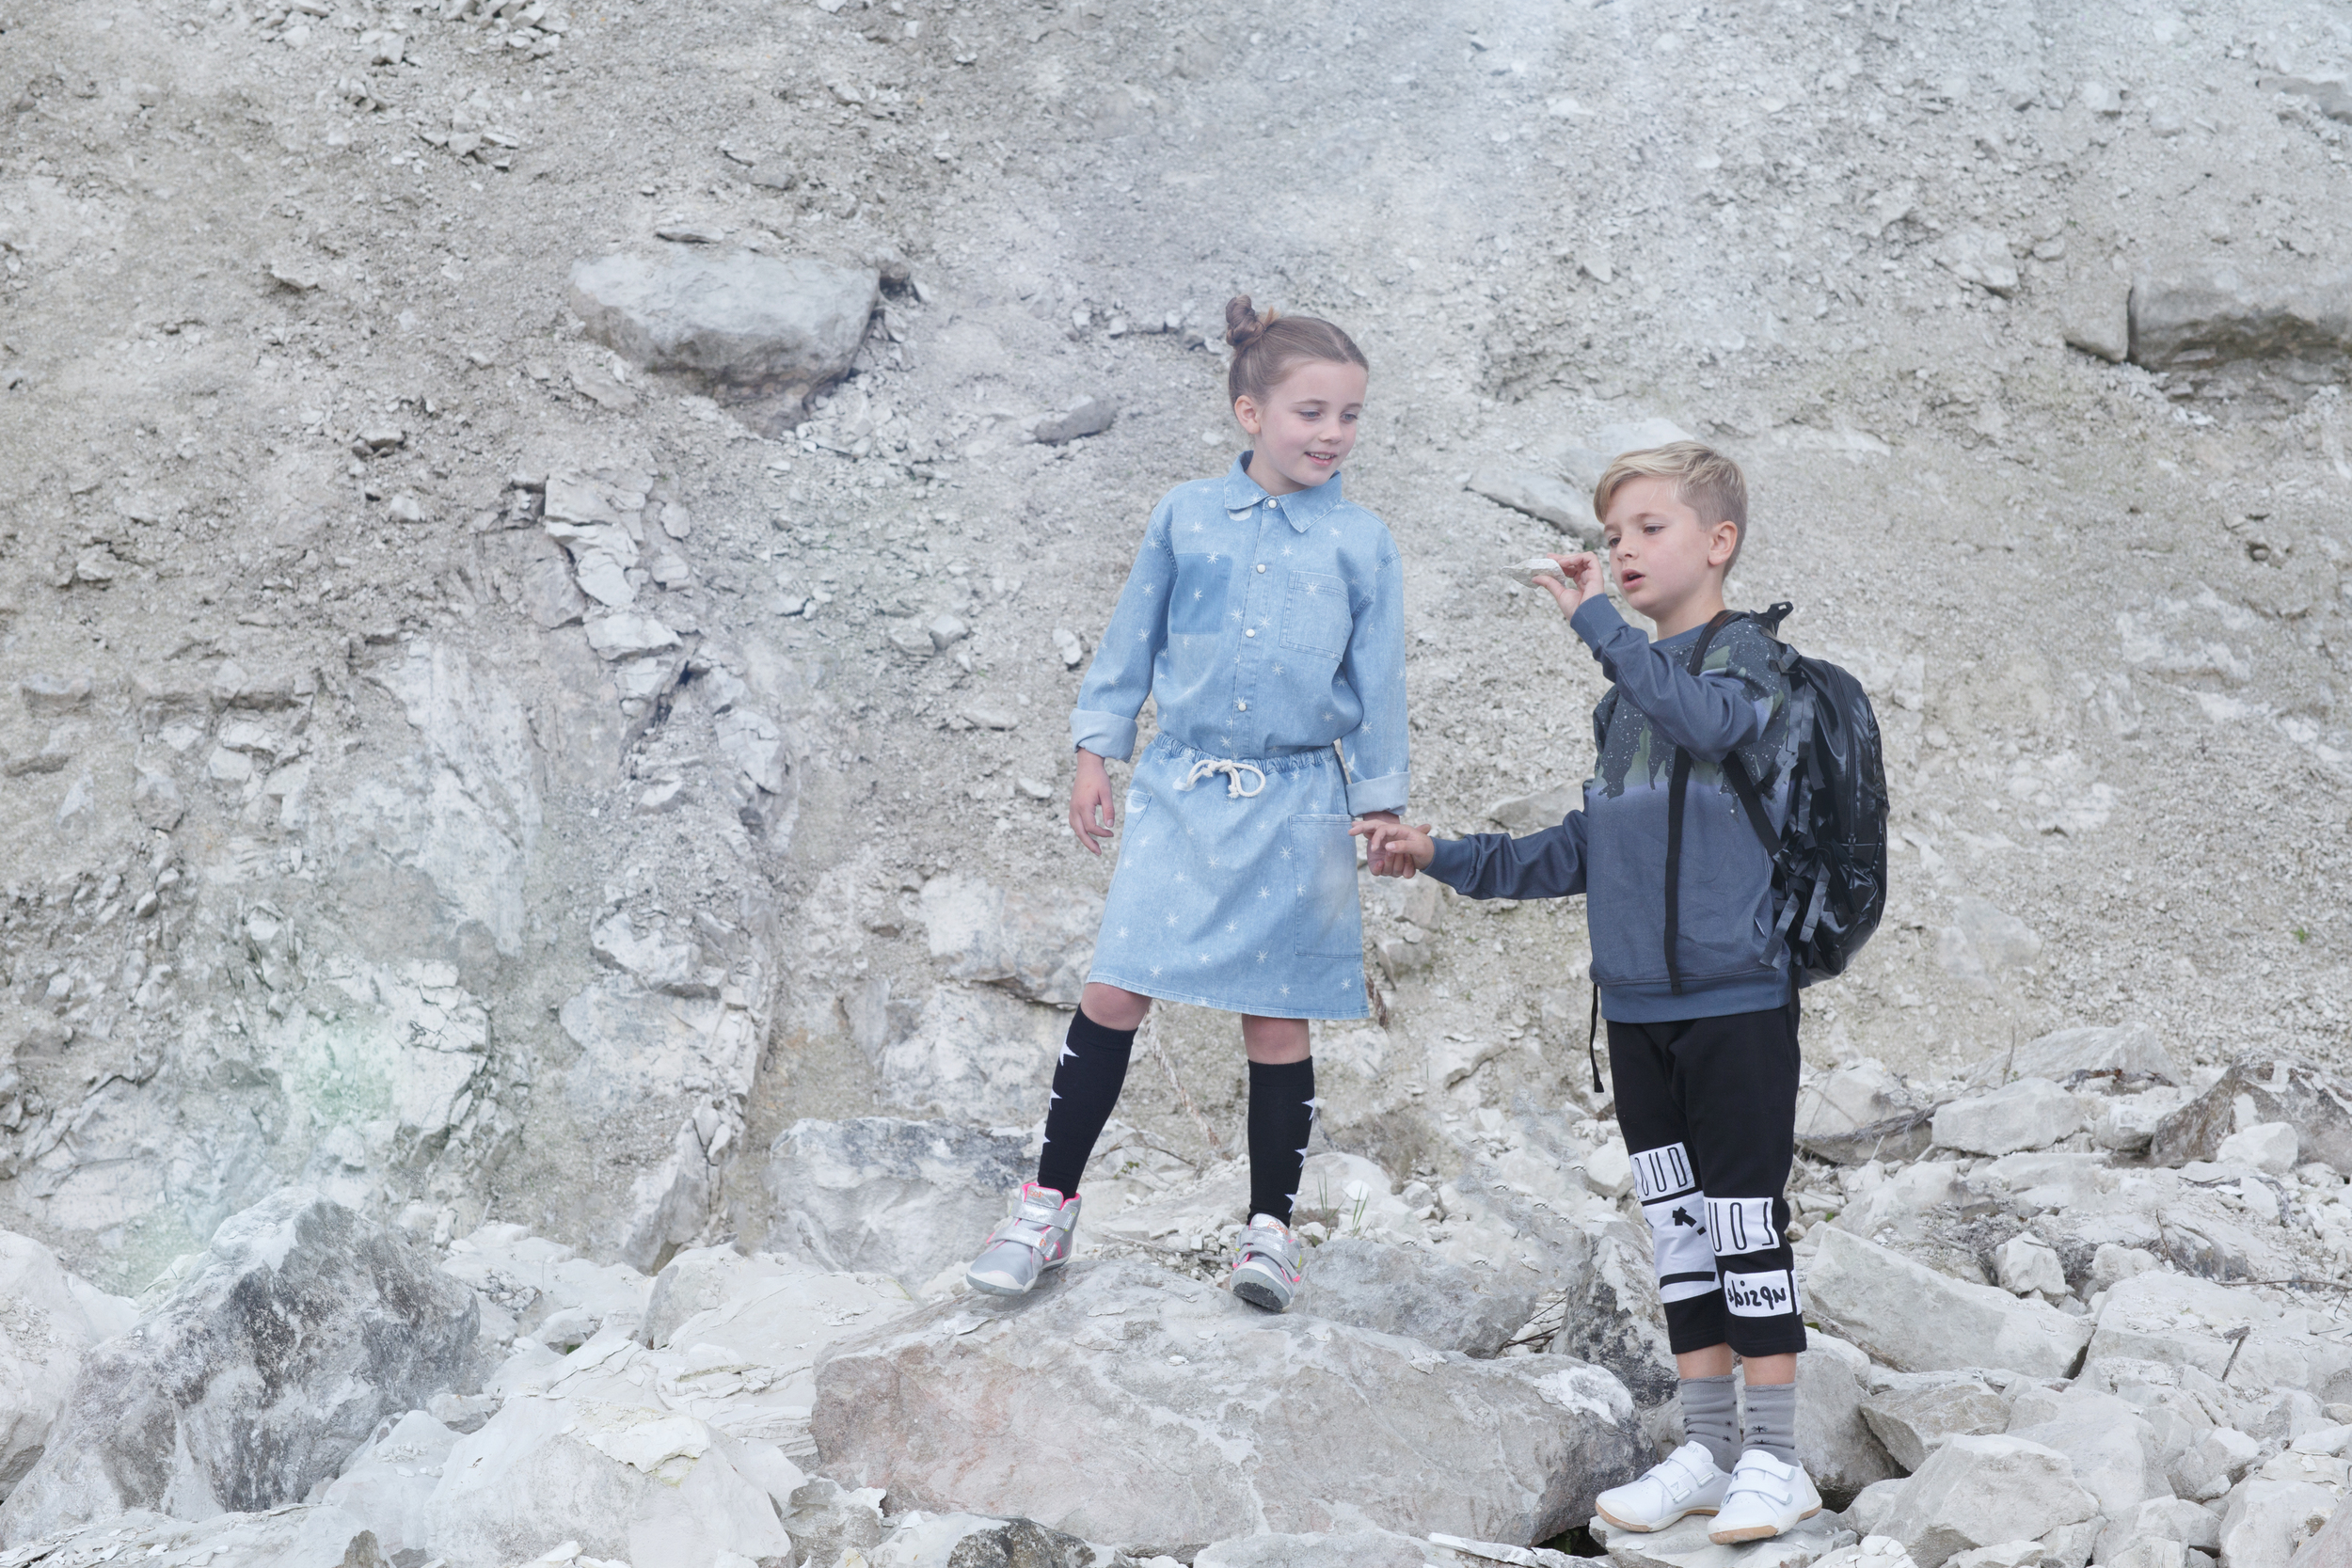 Pippa: Moon and stars denim shirt & skirt, Bobo Choses. Star socks, Molo. Silver trainers, Plae.  Sam: Space print sweatshirt, Someday Soon. Cropped trousers & backpack, Loud Apparel. Grey socks, Bobo Choses. White trainers, Plae.